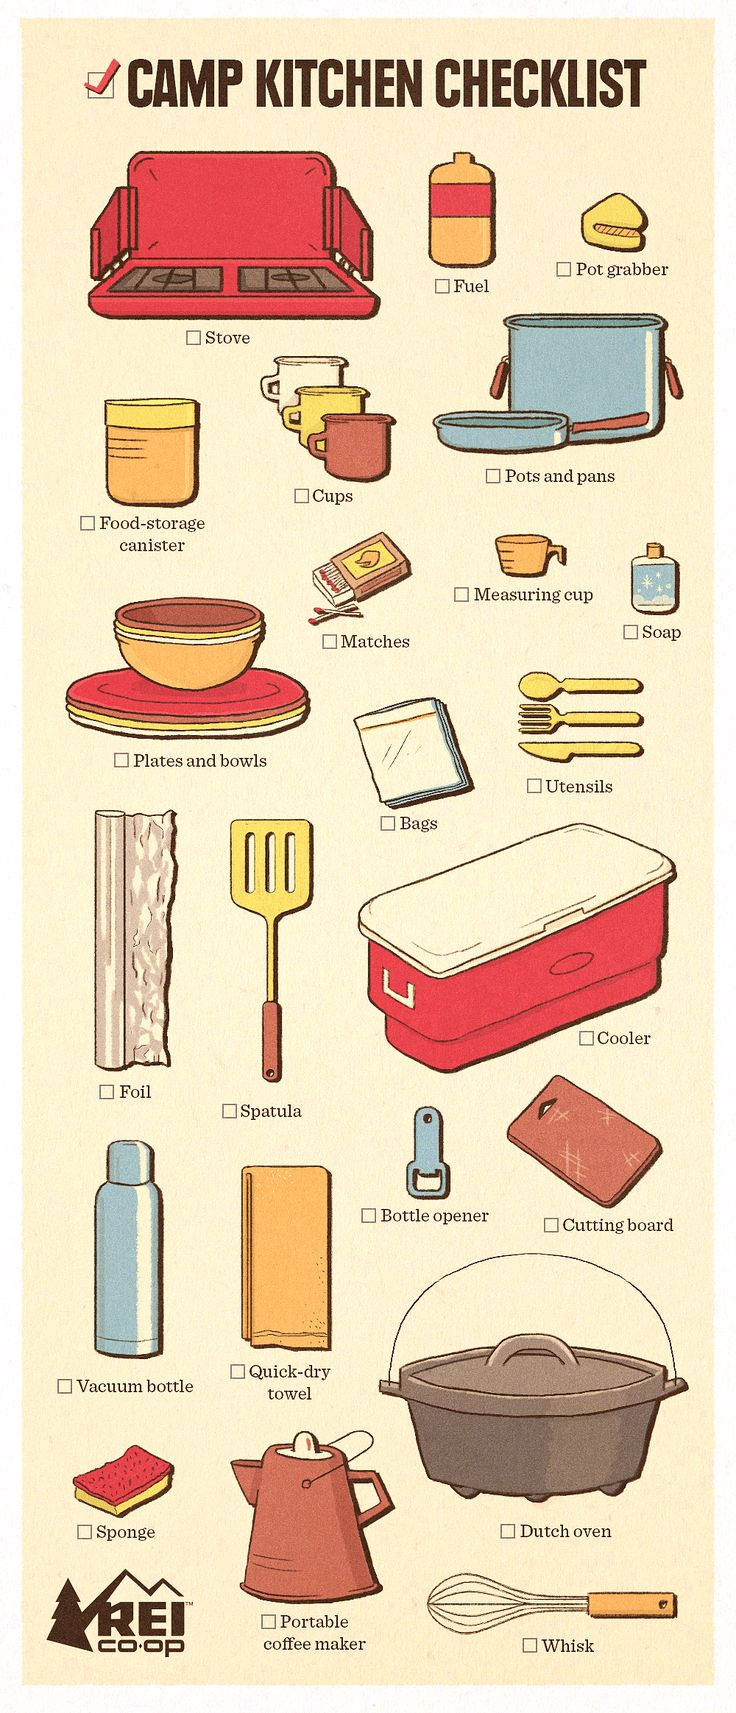 Our checklist for camp chefs is intentionally comprehensive so you don't forget anything important at the campground. Useful for backpacking chefs, too.